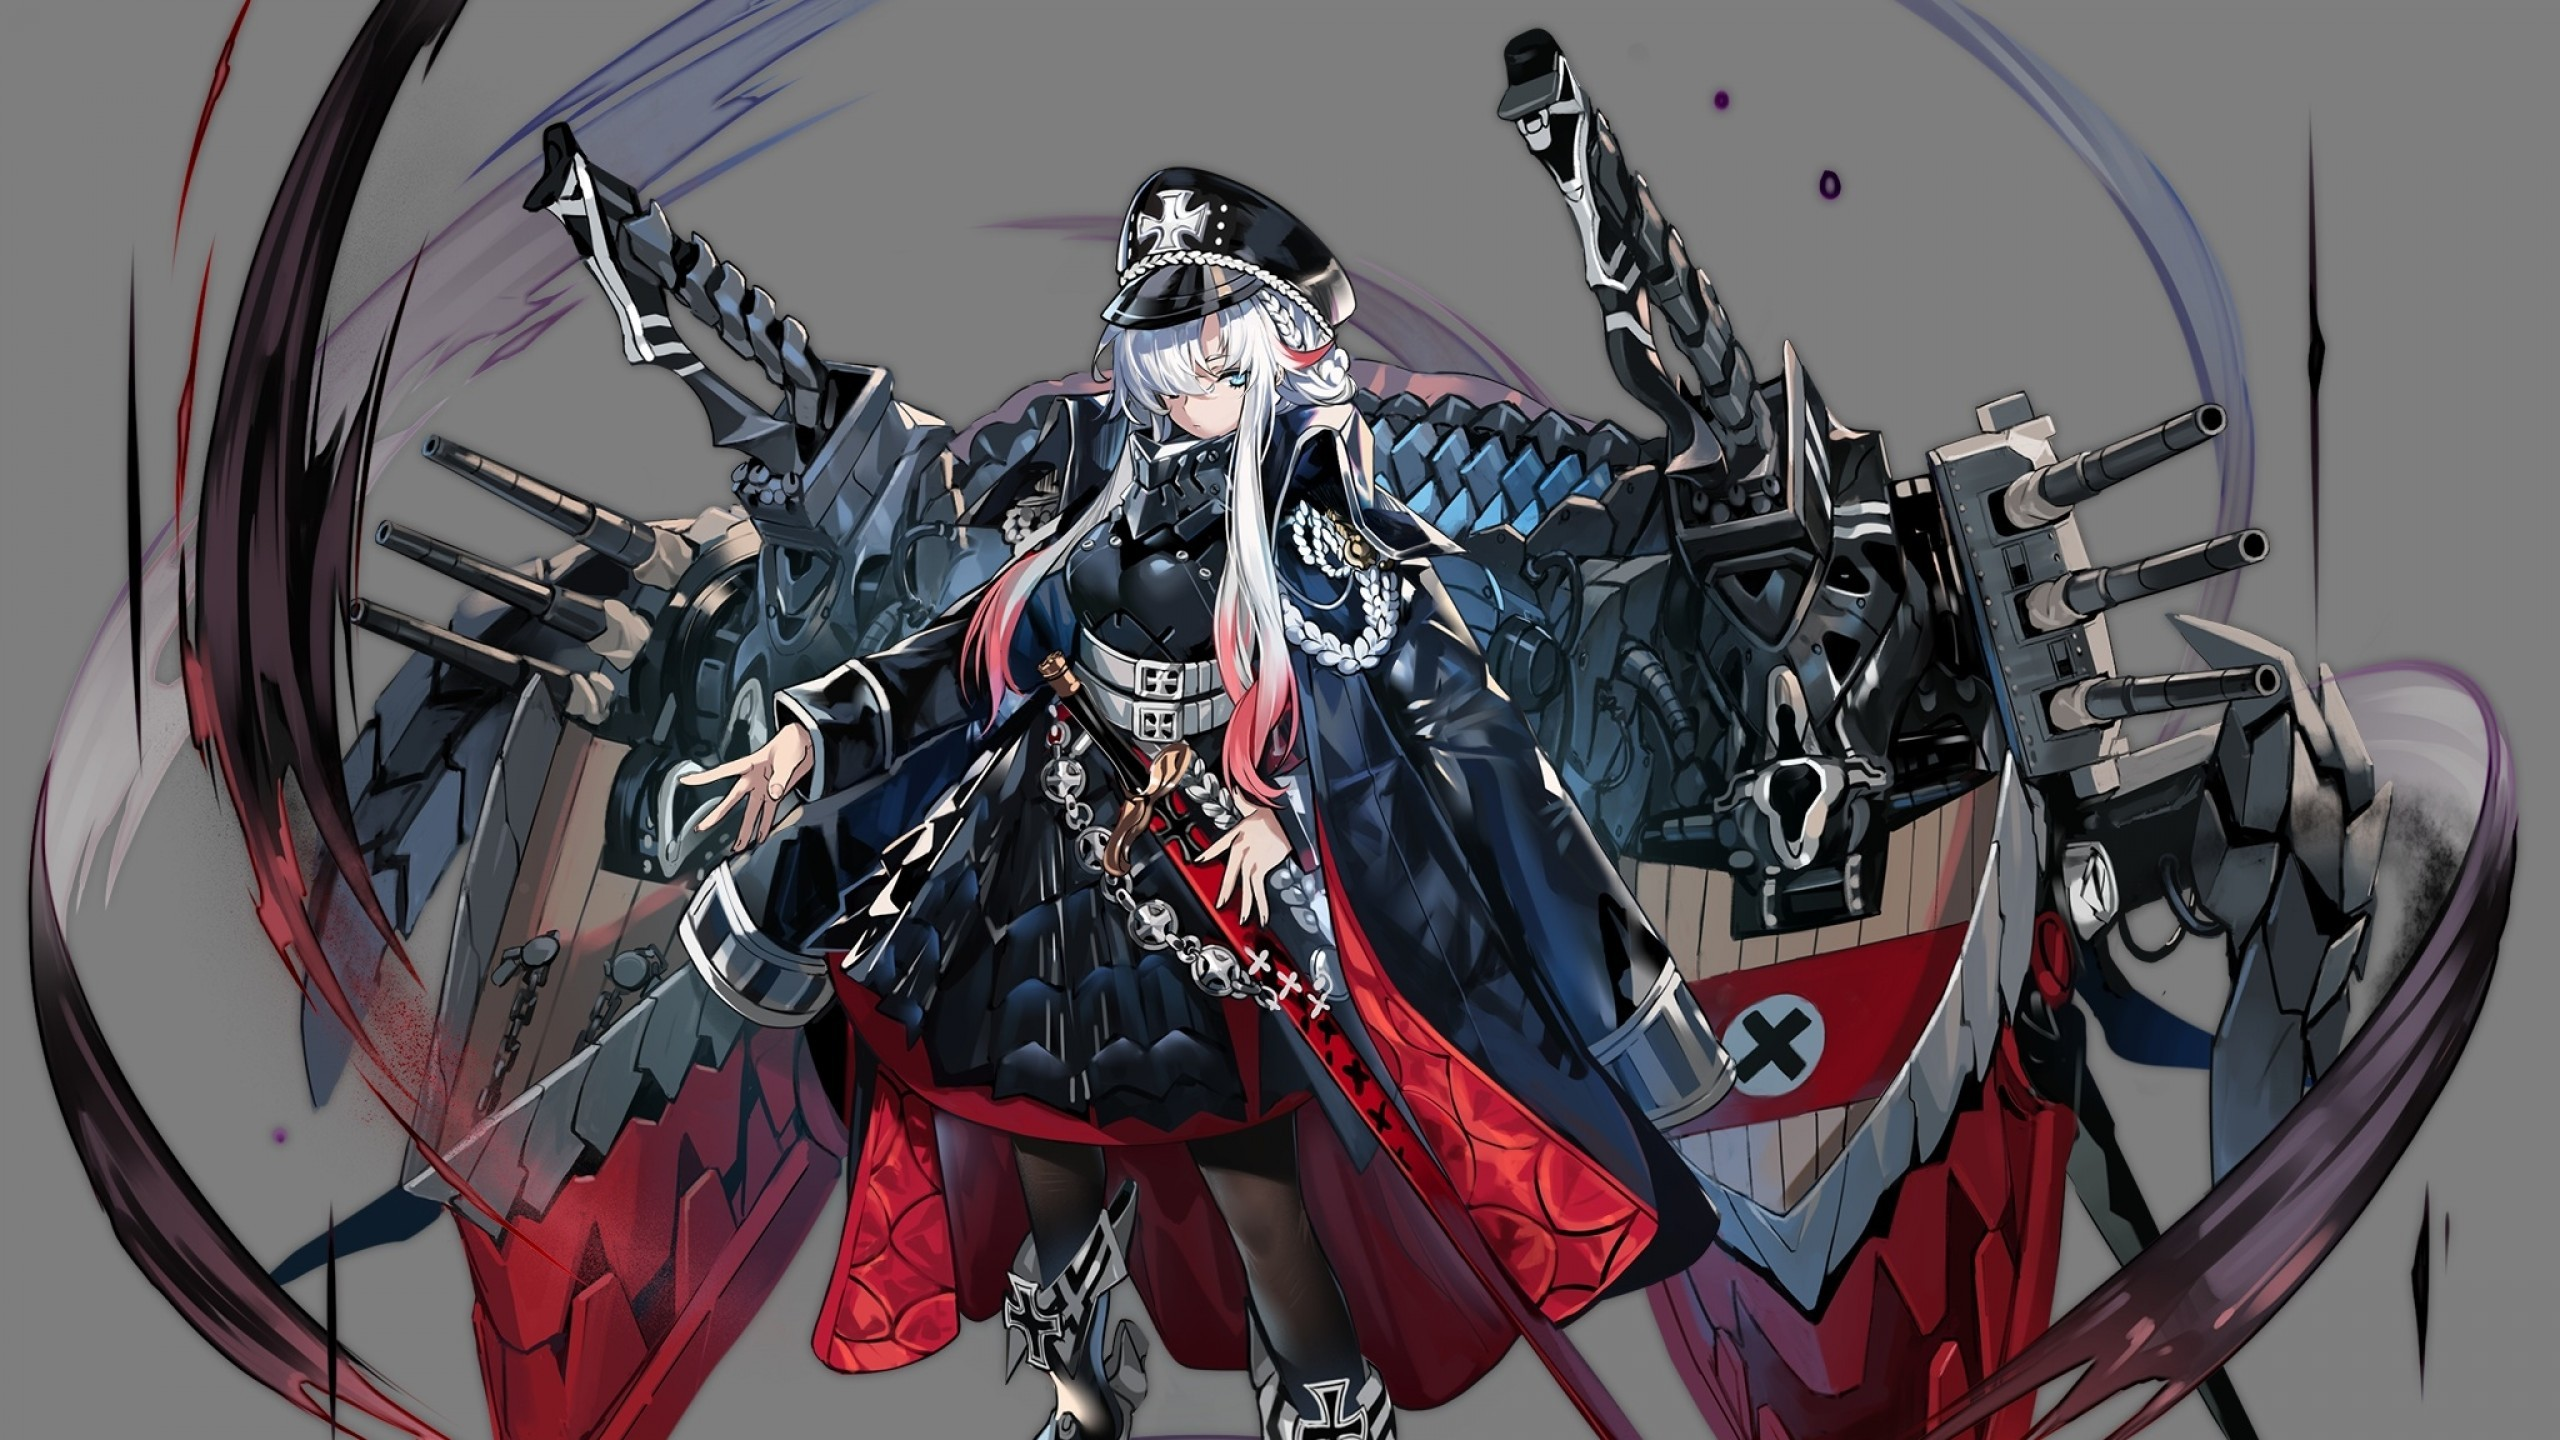 Download 2560x1440 Odin Azur Lane Anime Games Heavy Weapons 2560x1440